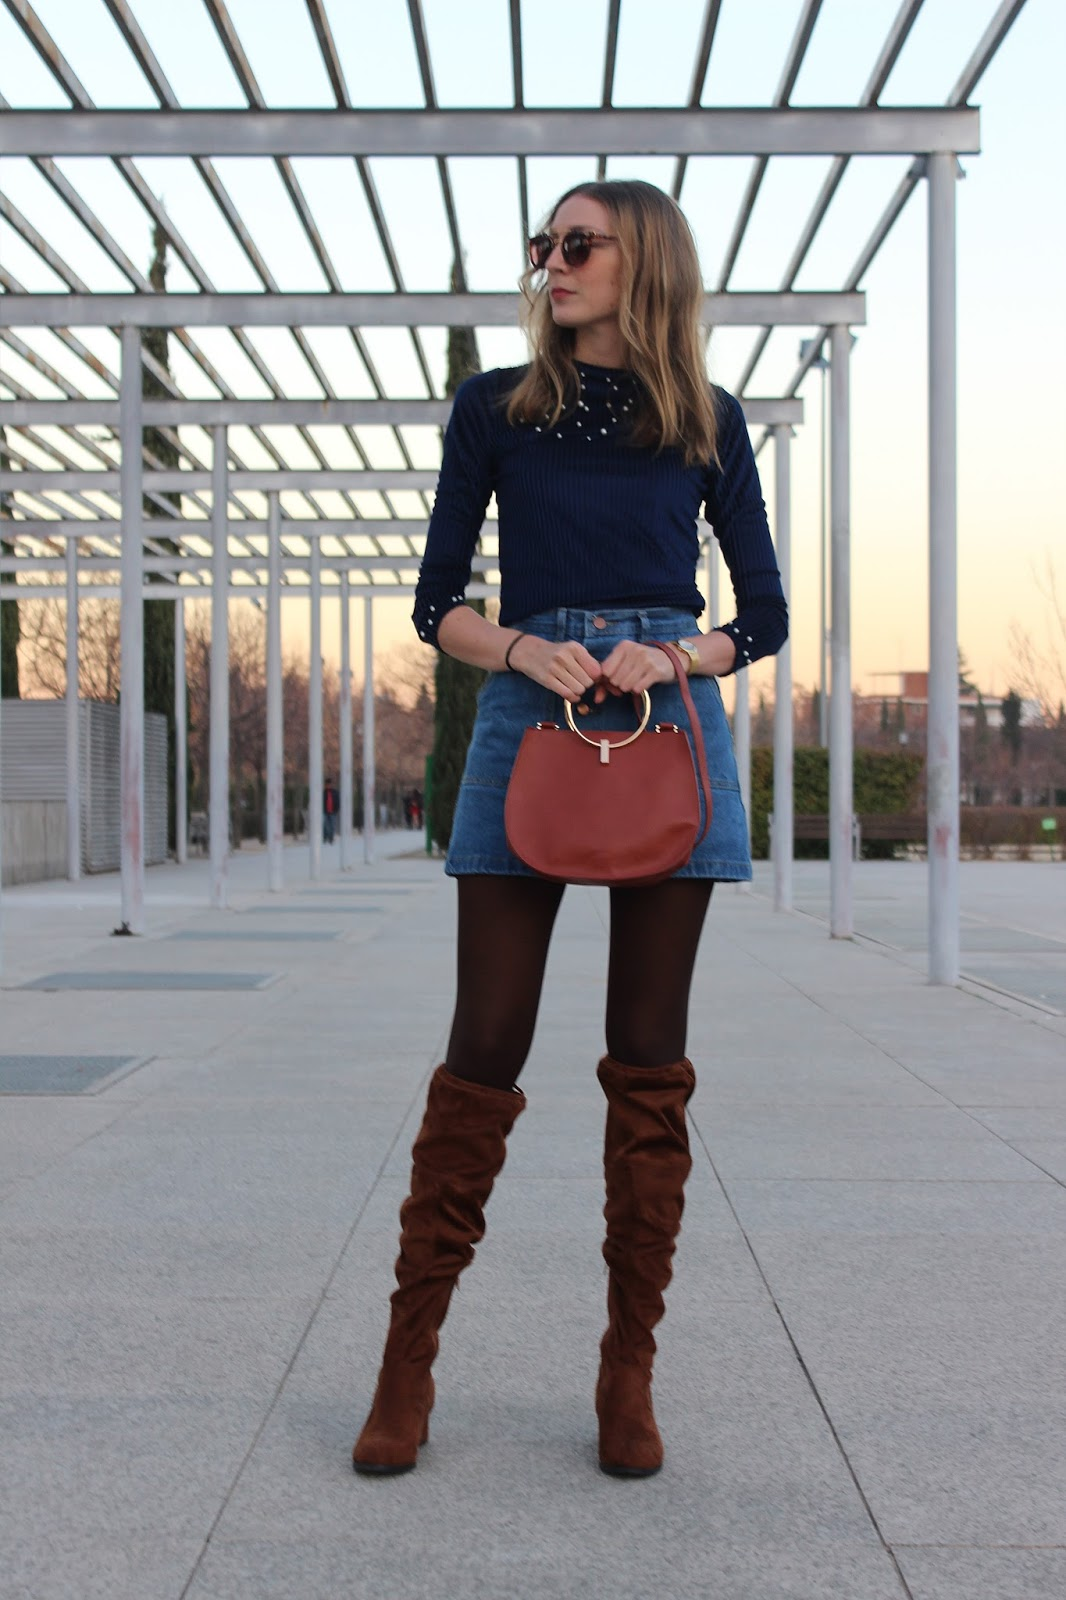 Pearl-top-denim-skirt-over-the-knee-boots-street-style